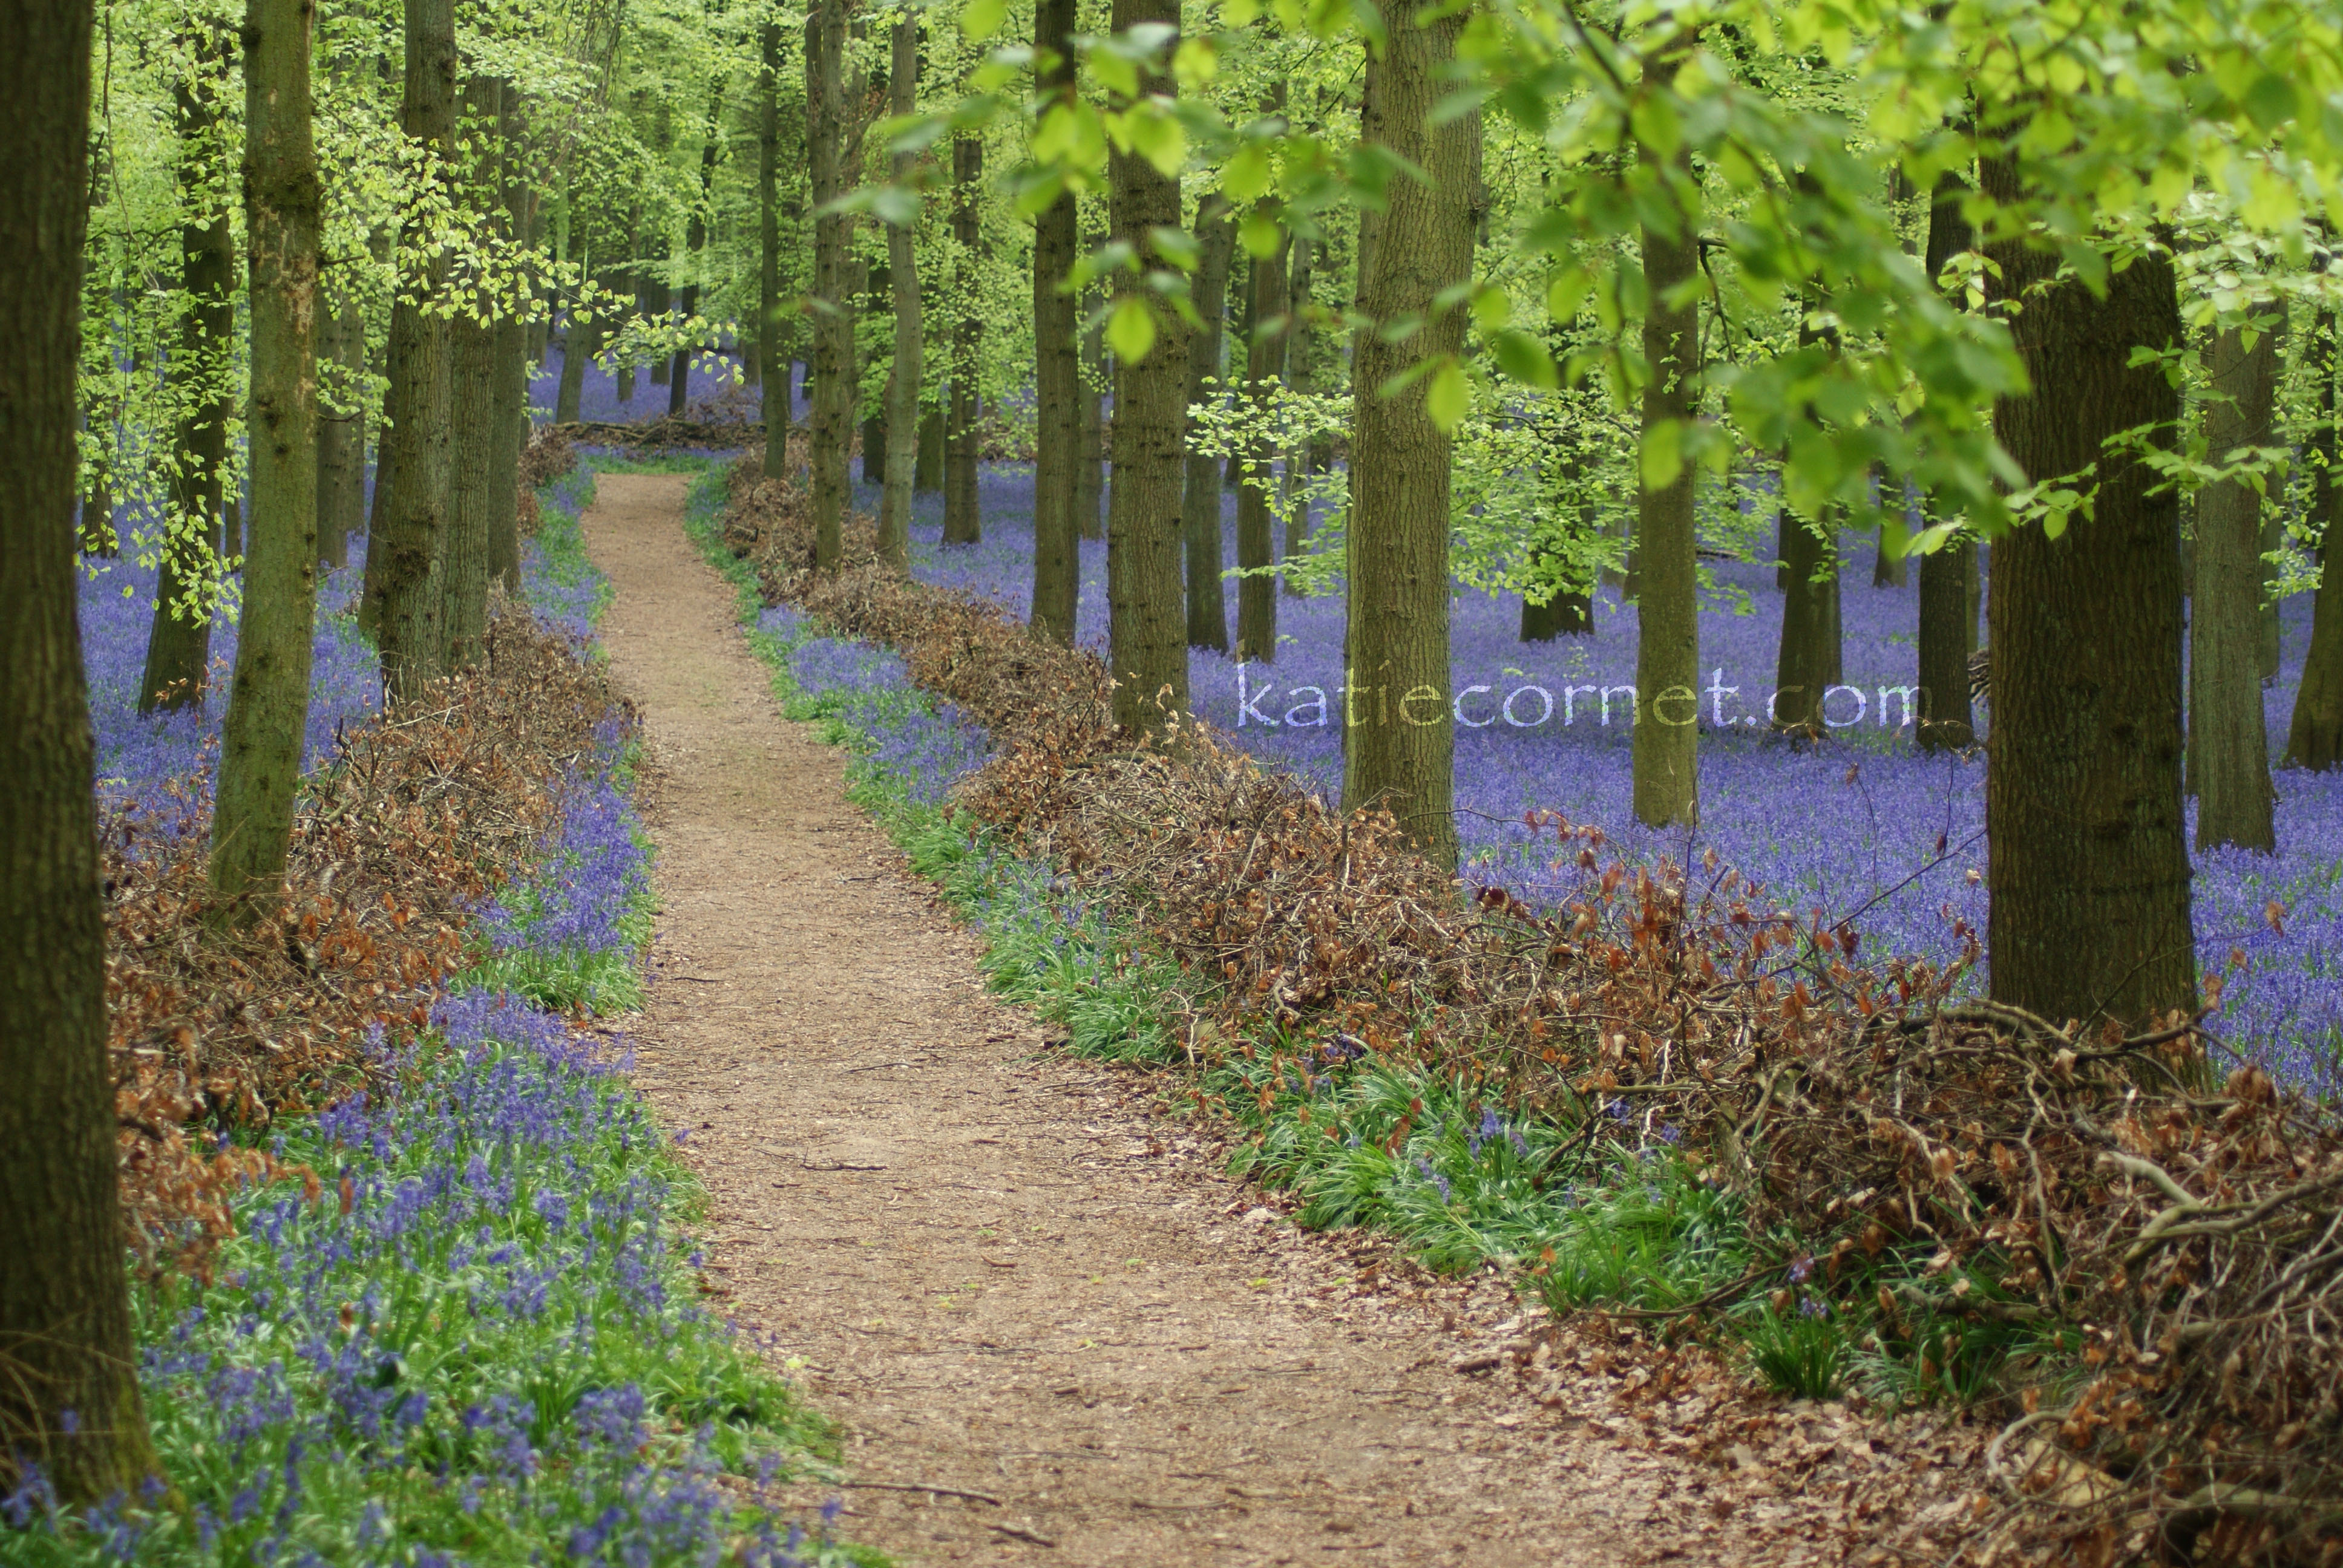 Intriguing path through the Bluebells, D